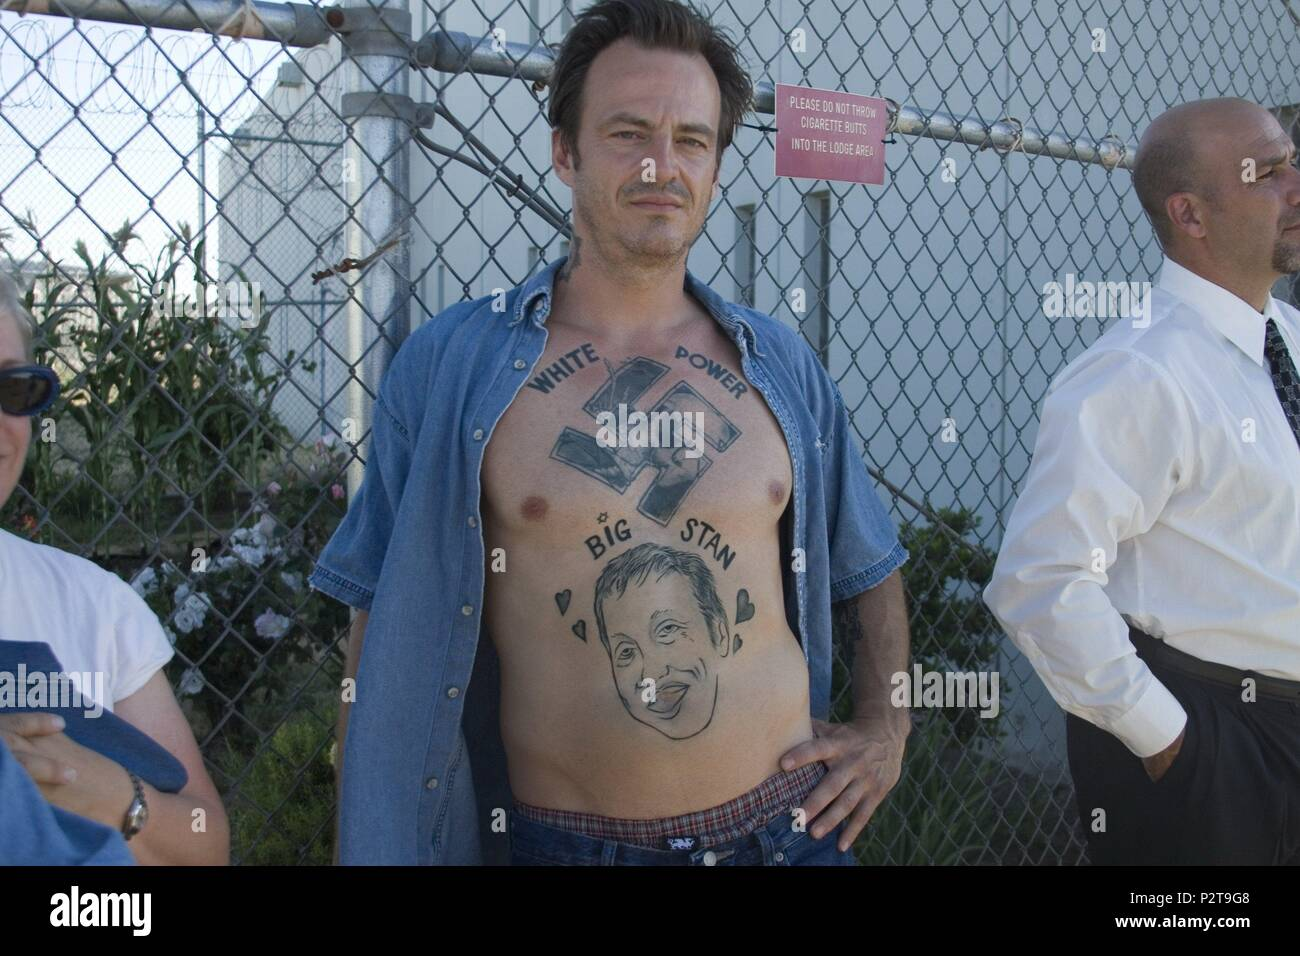 Original Film Title Big Stan English Title Big Stan Film Director Rob Schneider Year 2007 Stars Salvator Xuereb Credit Crystal Sky Pictures Silver Nitrate Pictures Velocity Pict Album Stock Photo Alamy